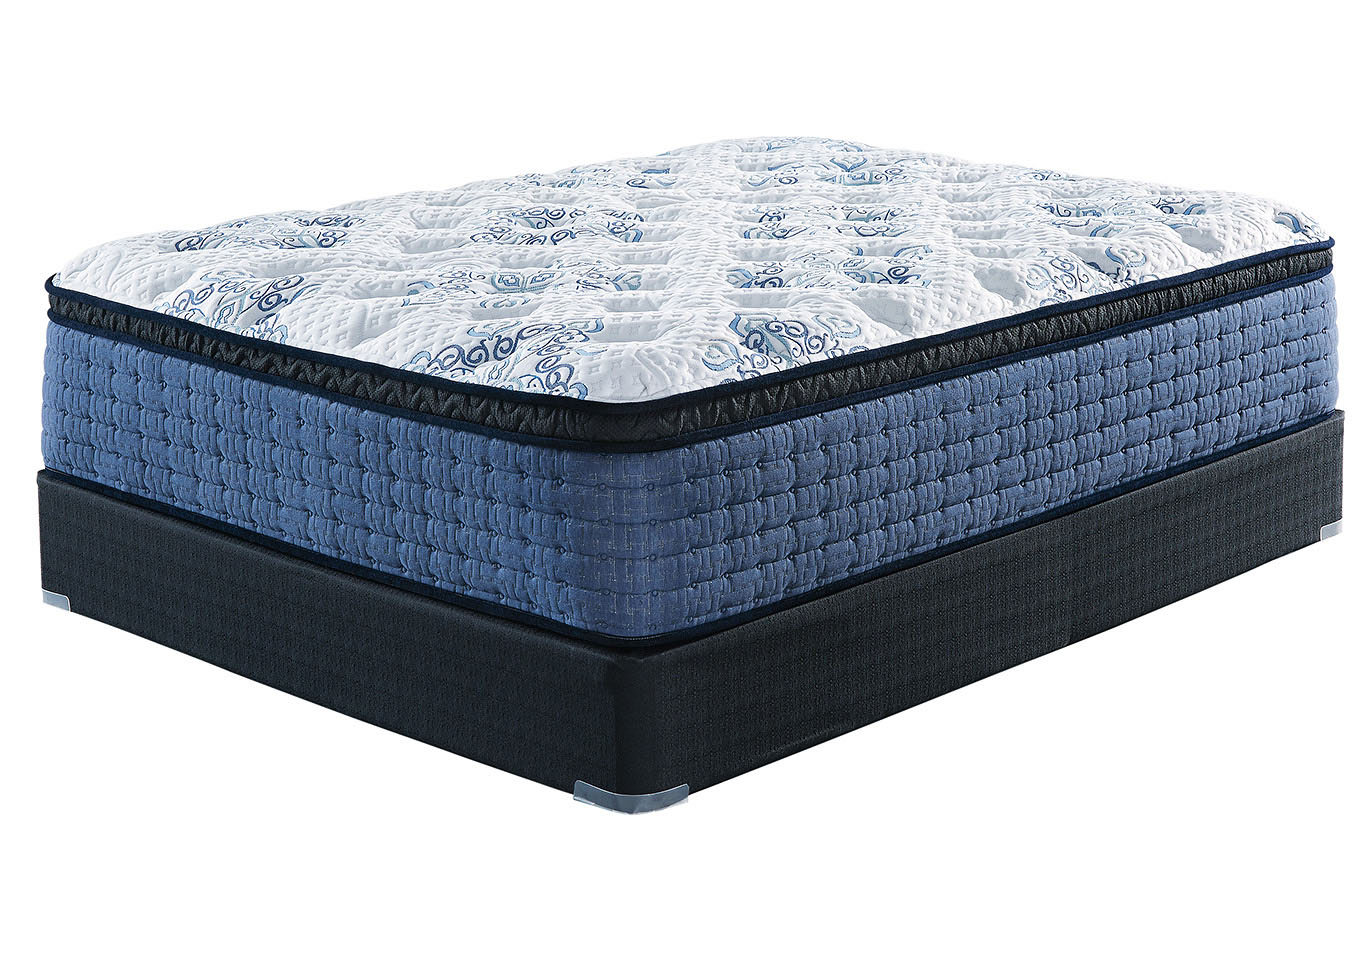 Mt. Dana White Eurotop Queen Mattress,Sierra Sleep by Ashley